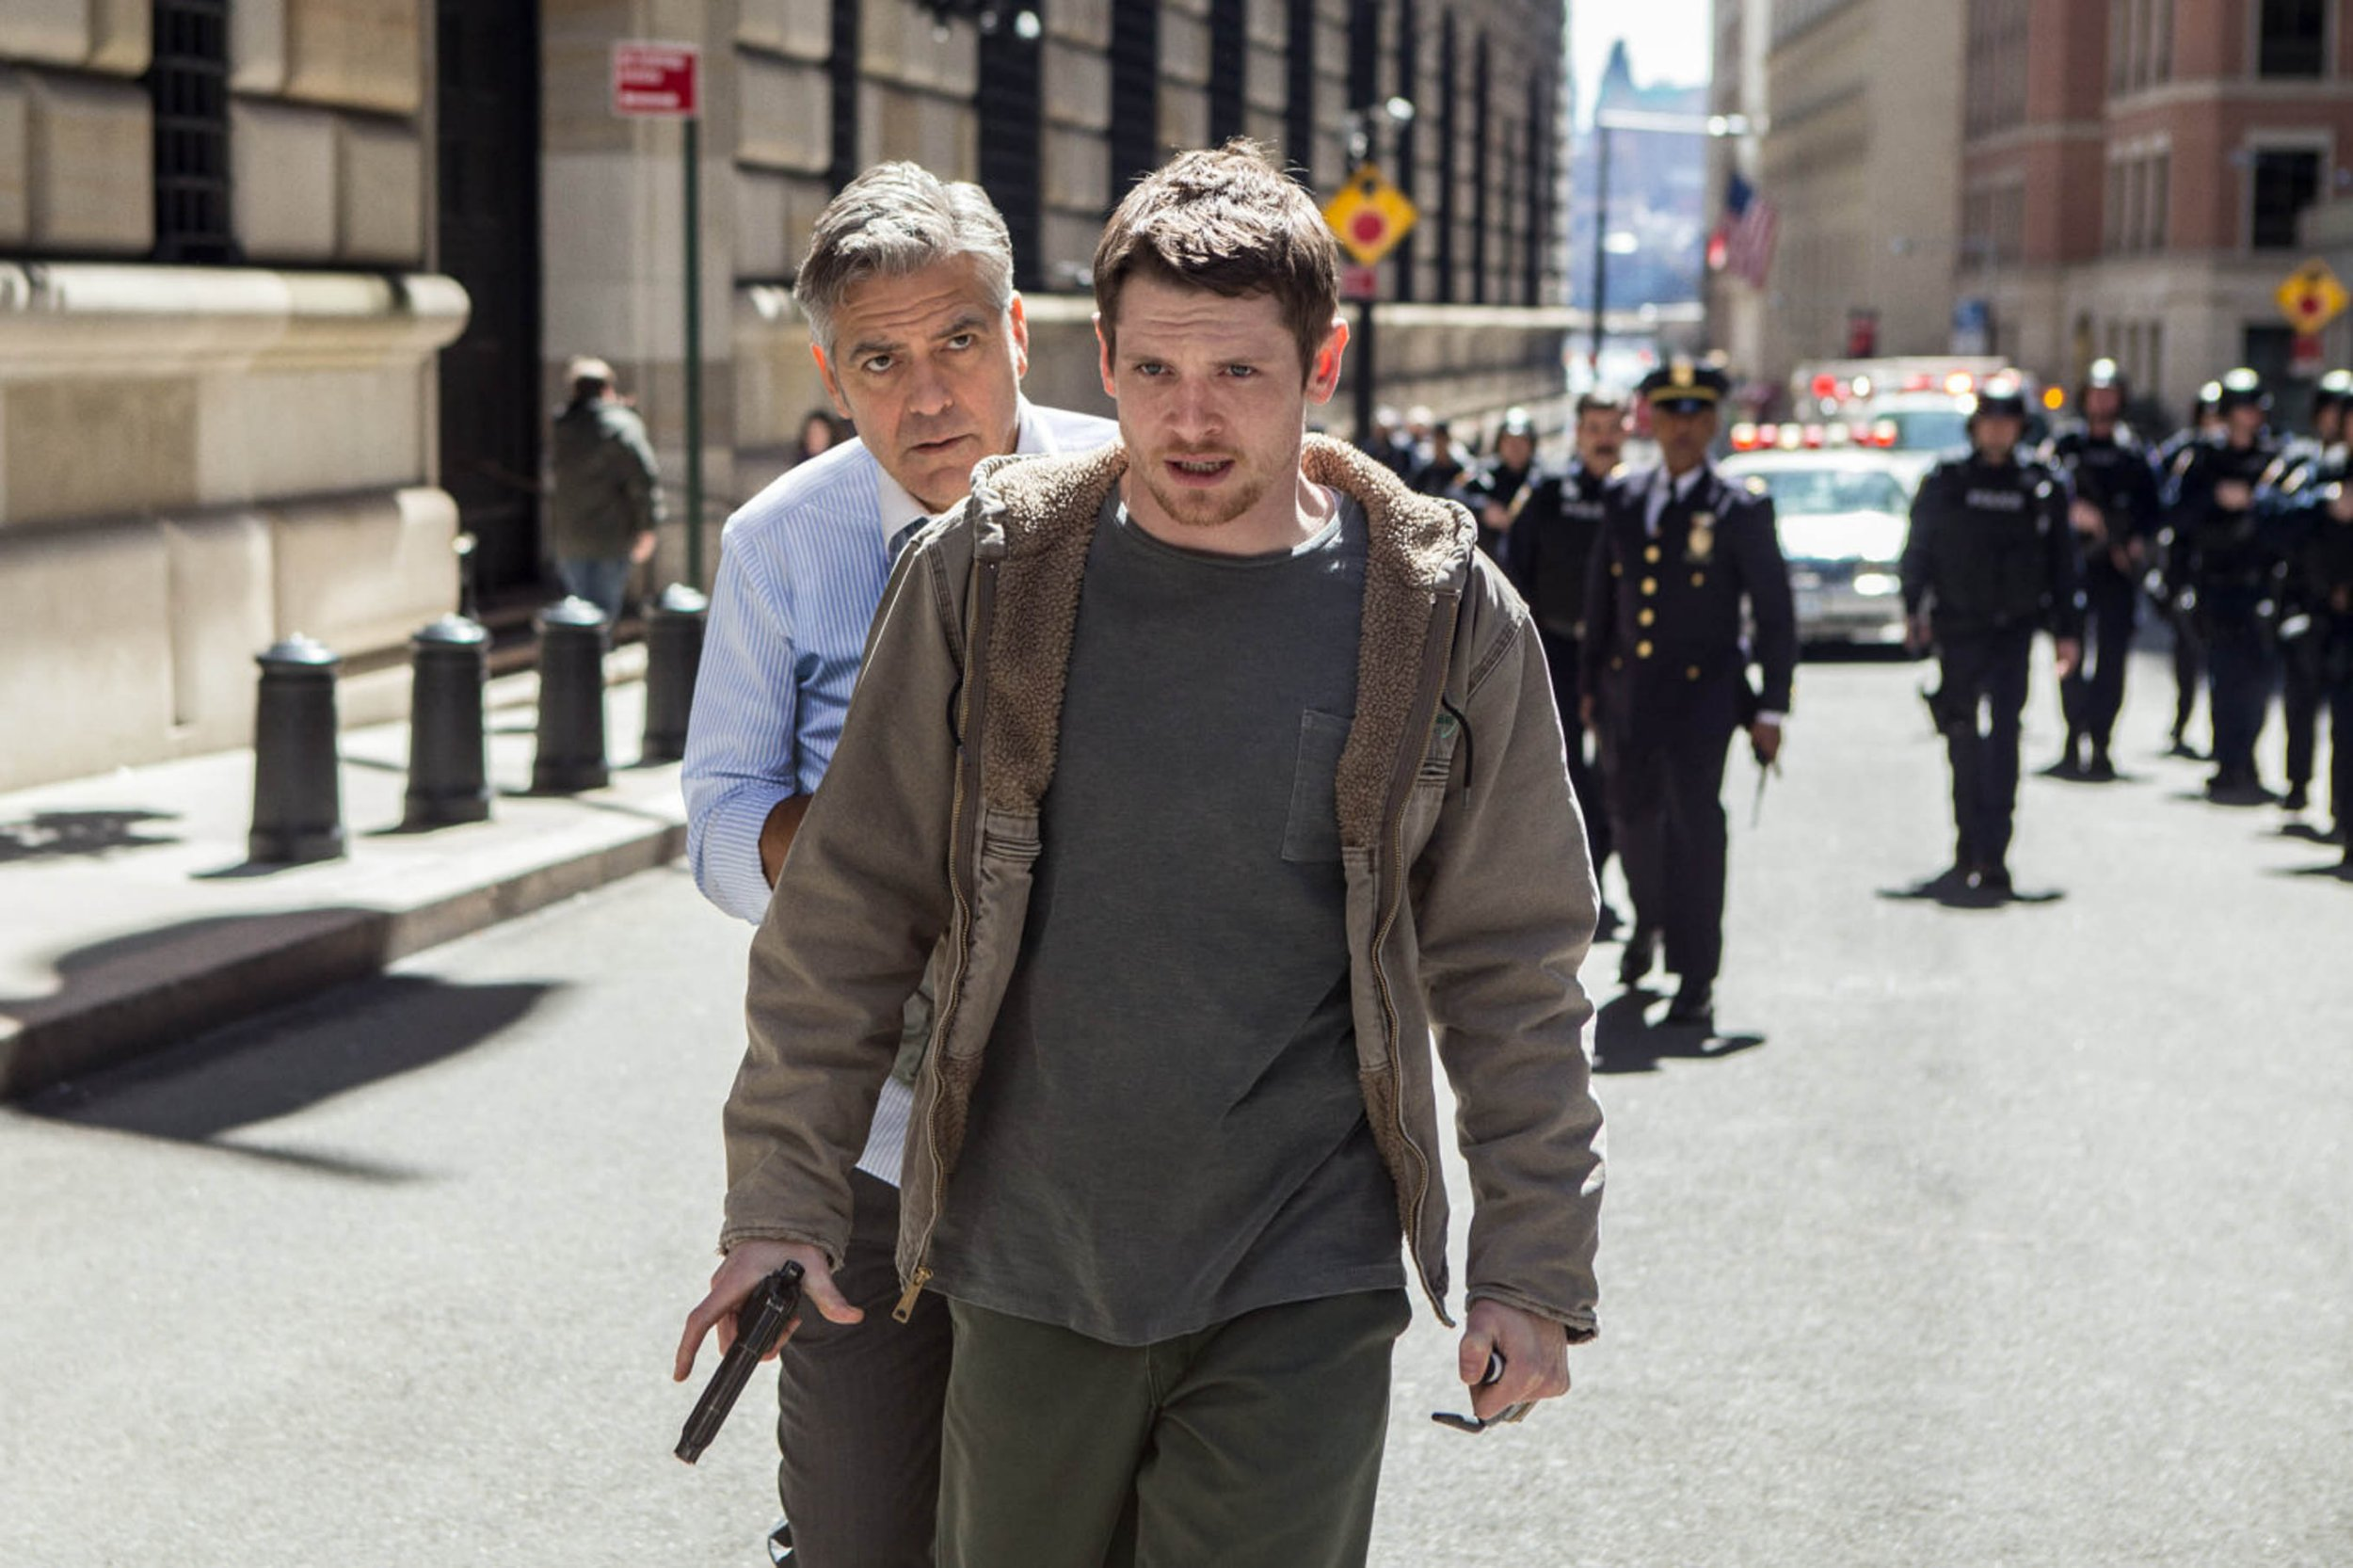 "16-5-2016 ""Money Monster"" film stills Pictured: George Clooney Jack O'Connell PLANET PHOTOS www.planetphotos.co.uk info@planetphotos.co.uk +44 (0)20 8883 1438"